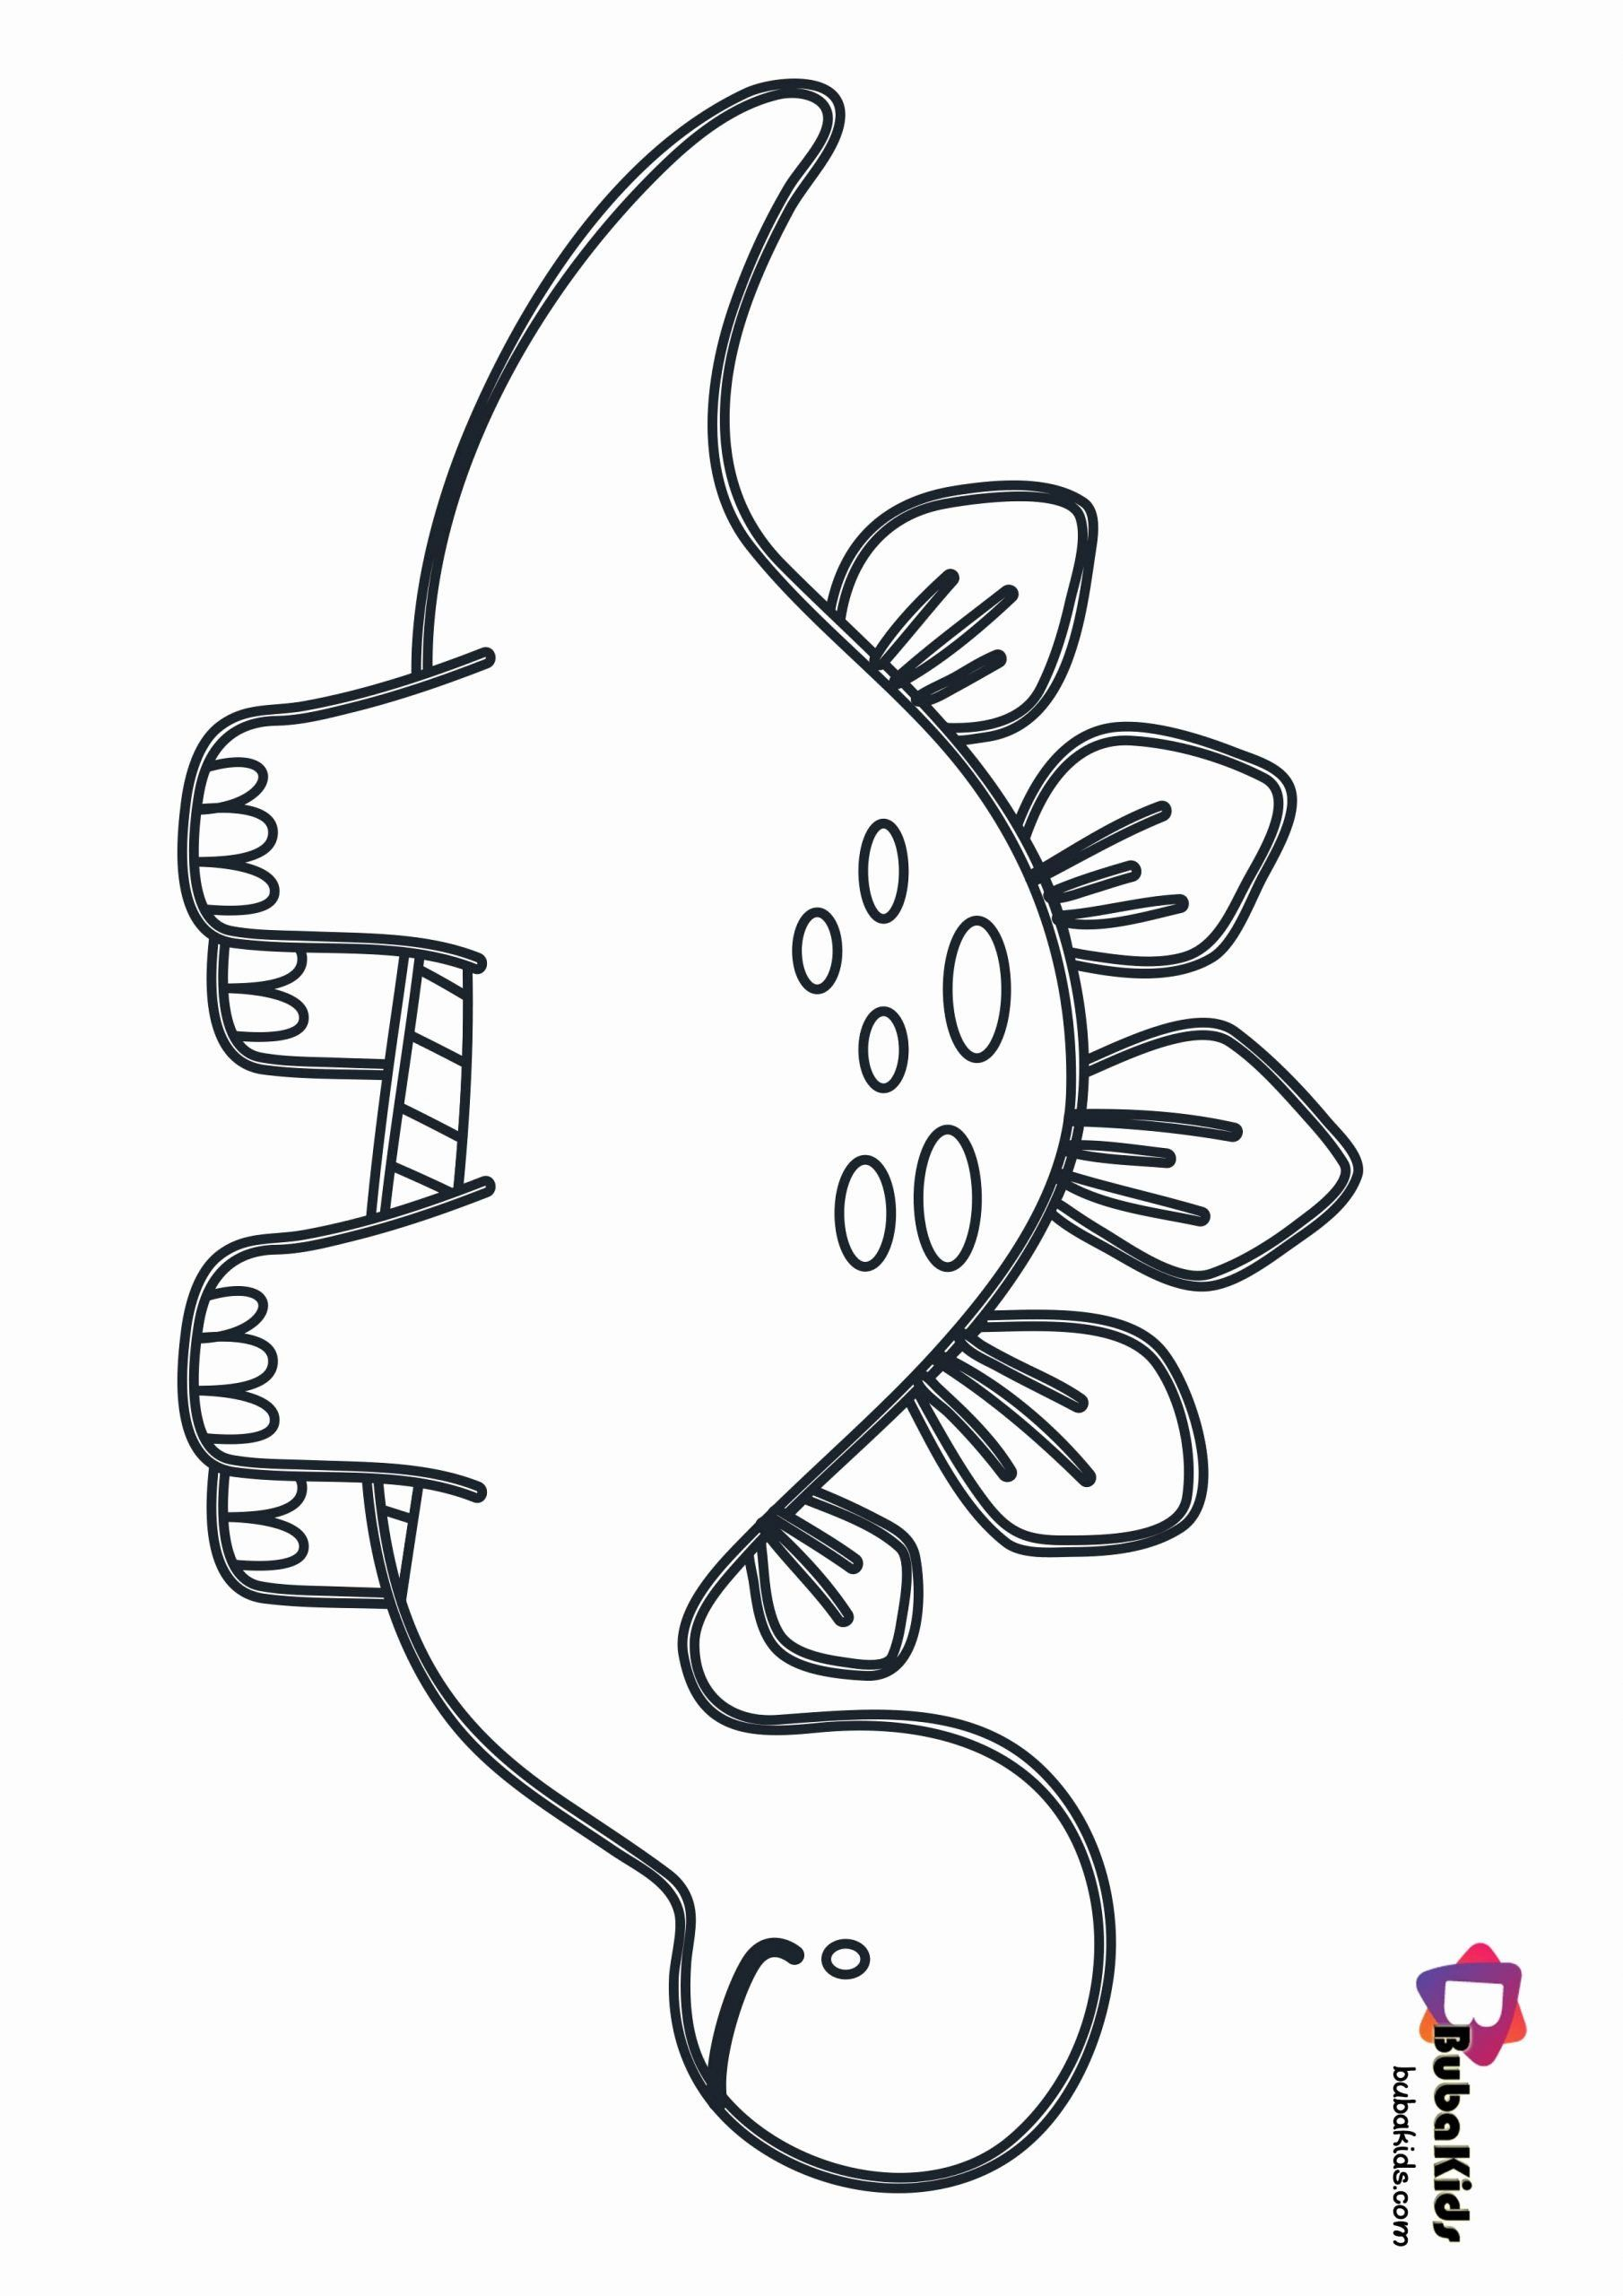 Coloring Pictures Of Dinosaurs Luxury Cute Baby Dinosaurs Coloring Page For Kids In 2020 Dinosaur Coloring Pages Cute Coloring Pages Dinosaur Coloring